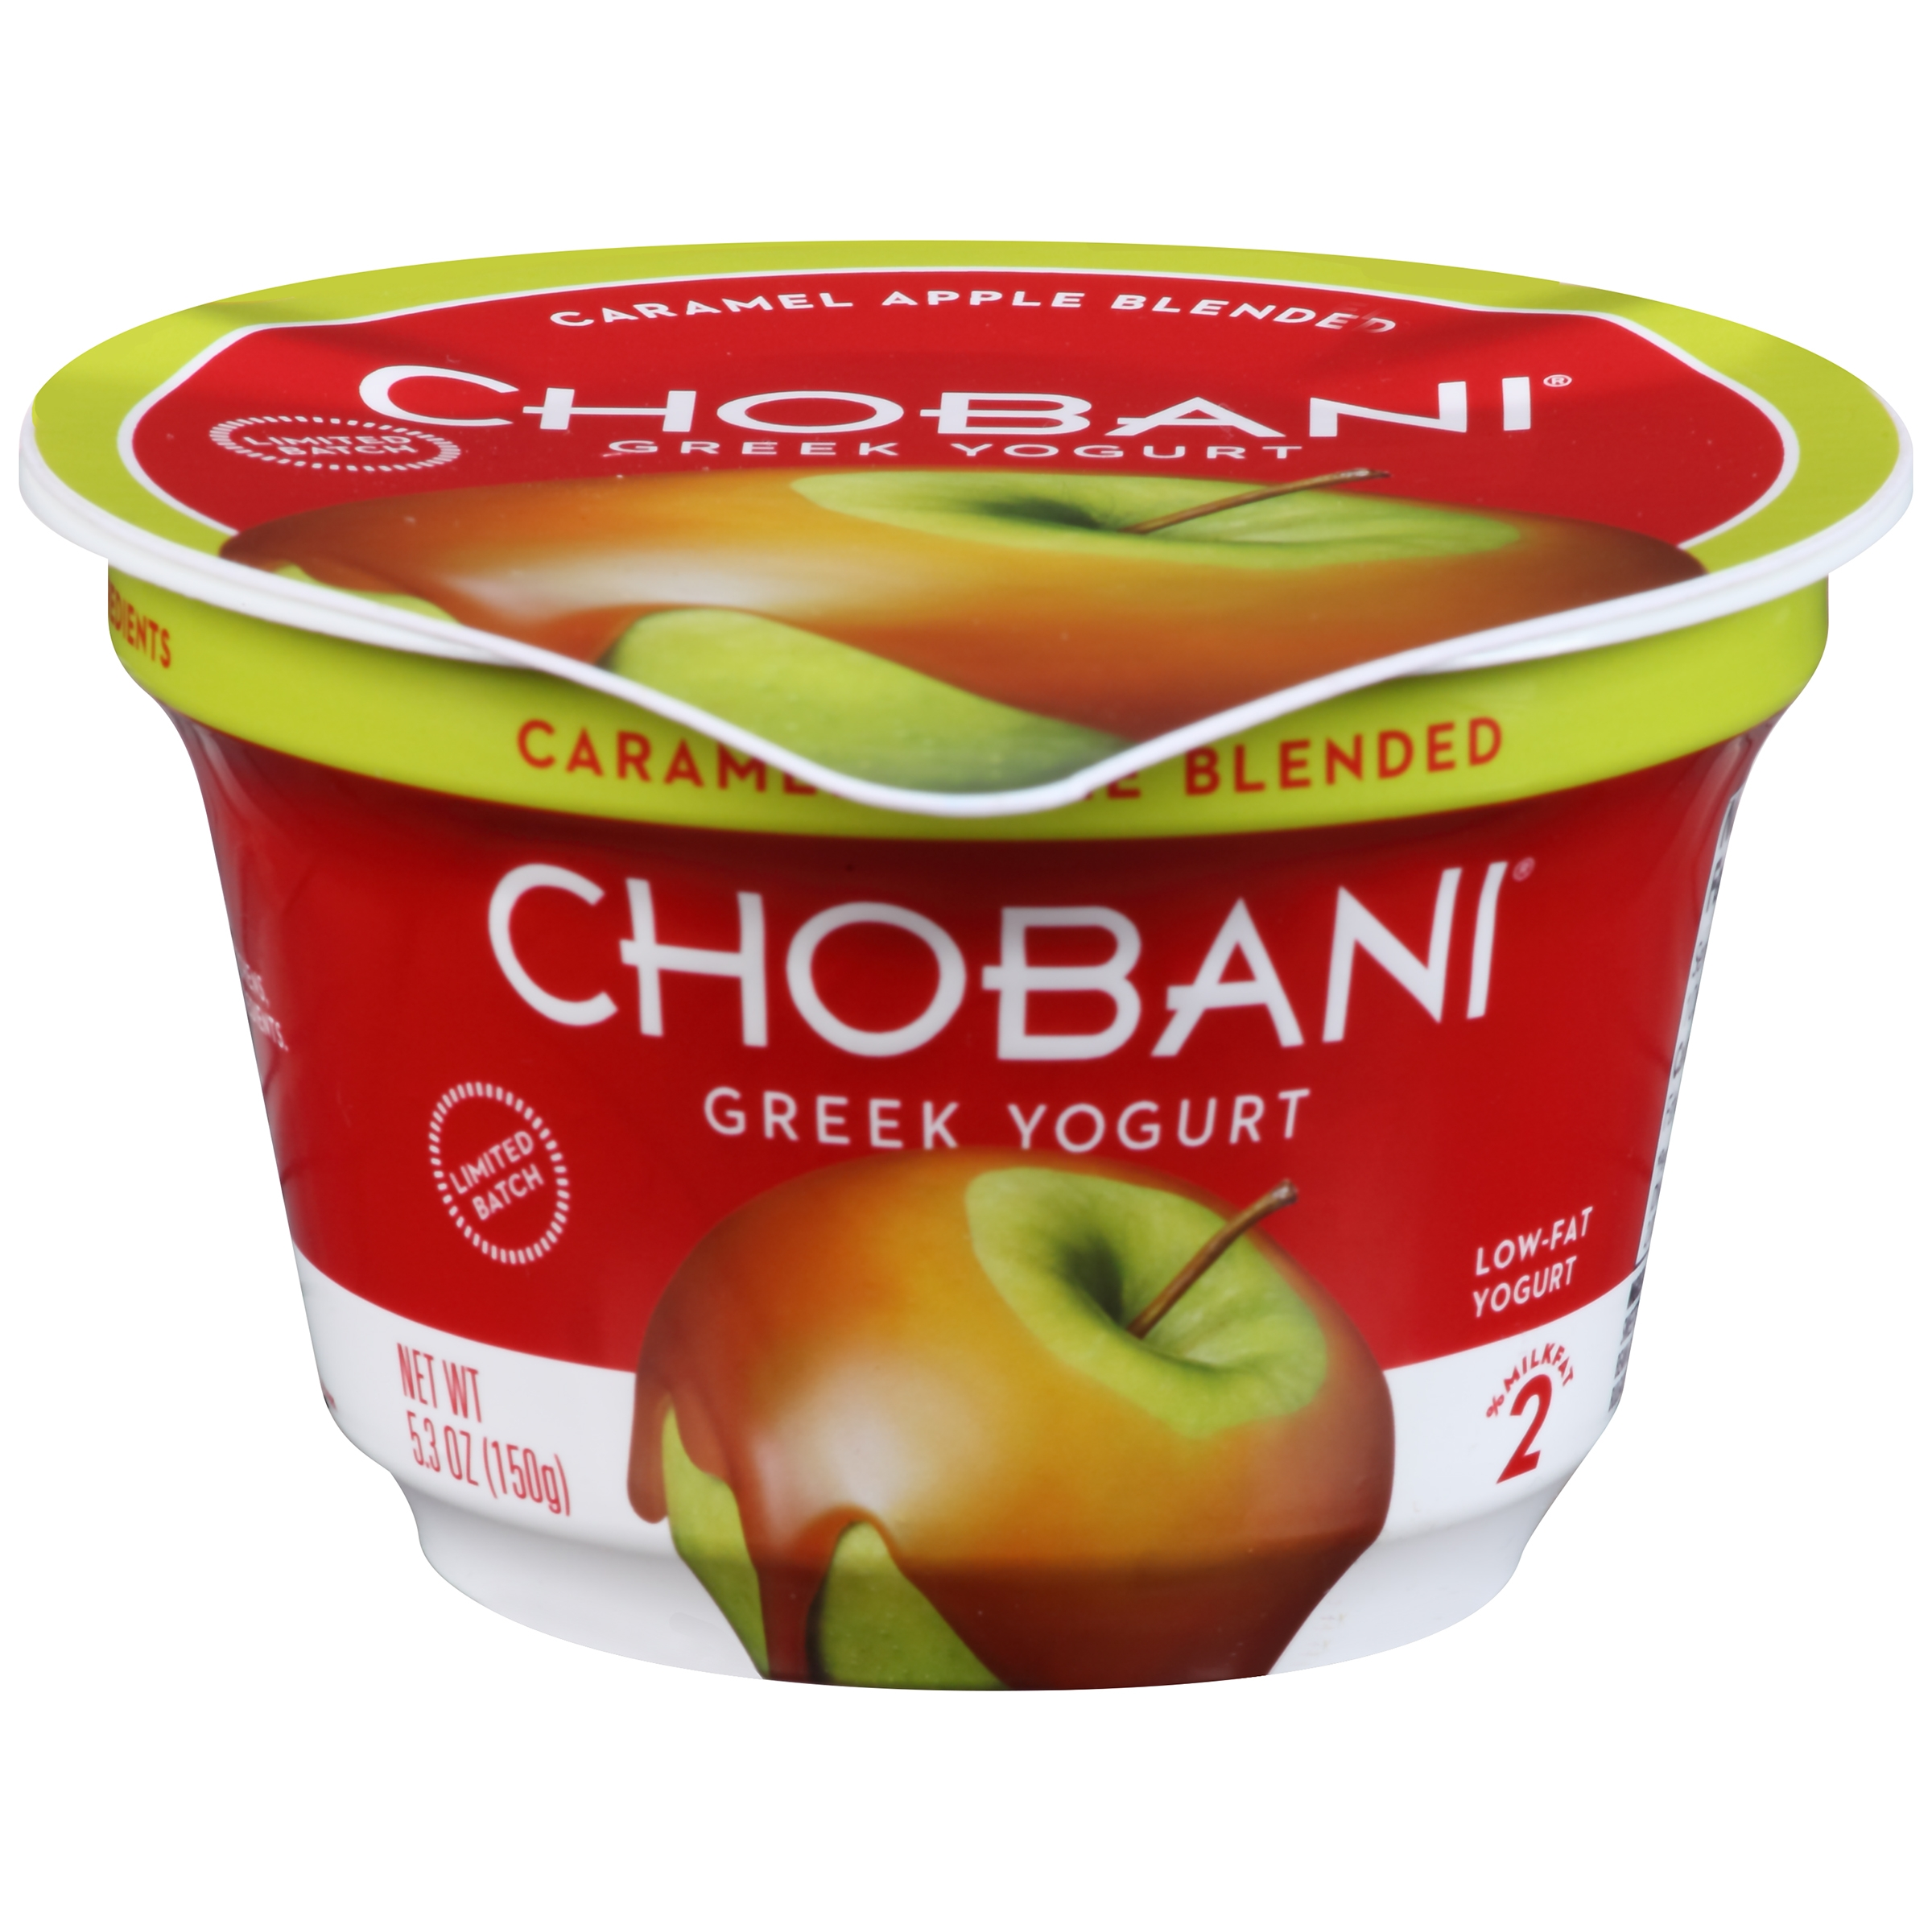 Chobani Caramel Apple Blended Low-Fat Greek Yogurt